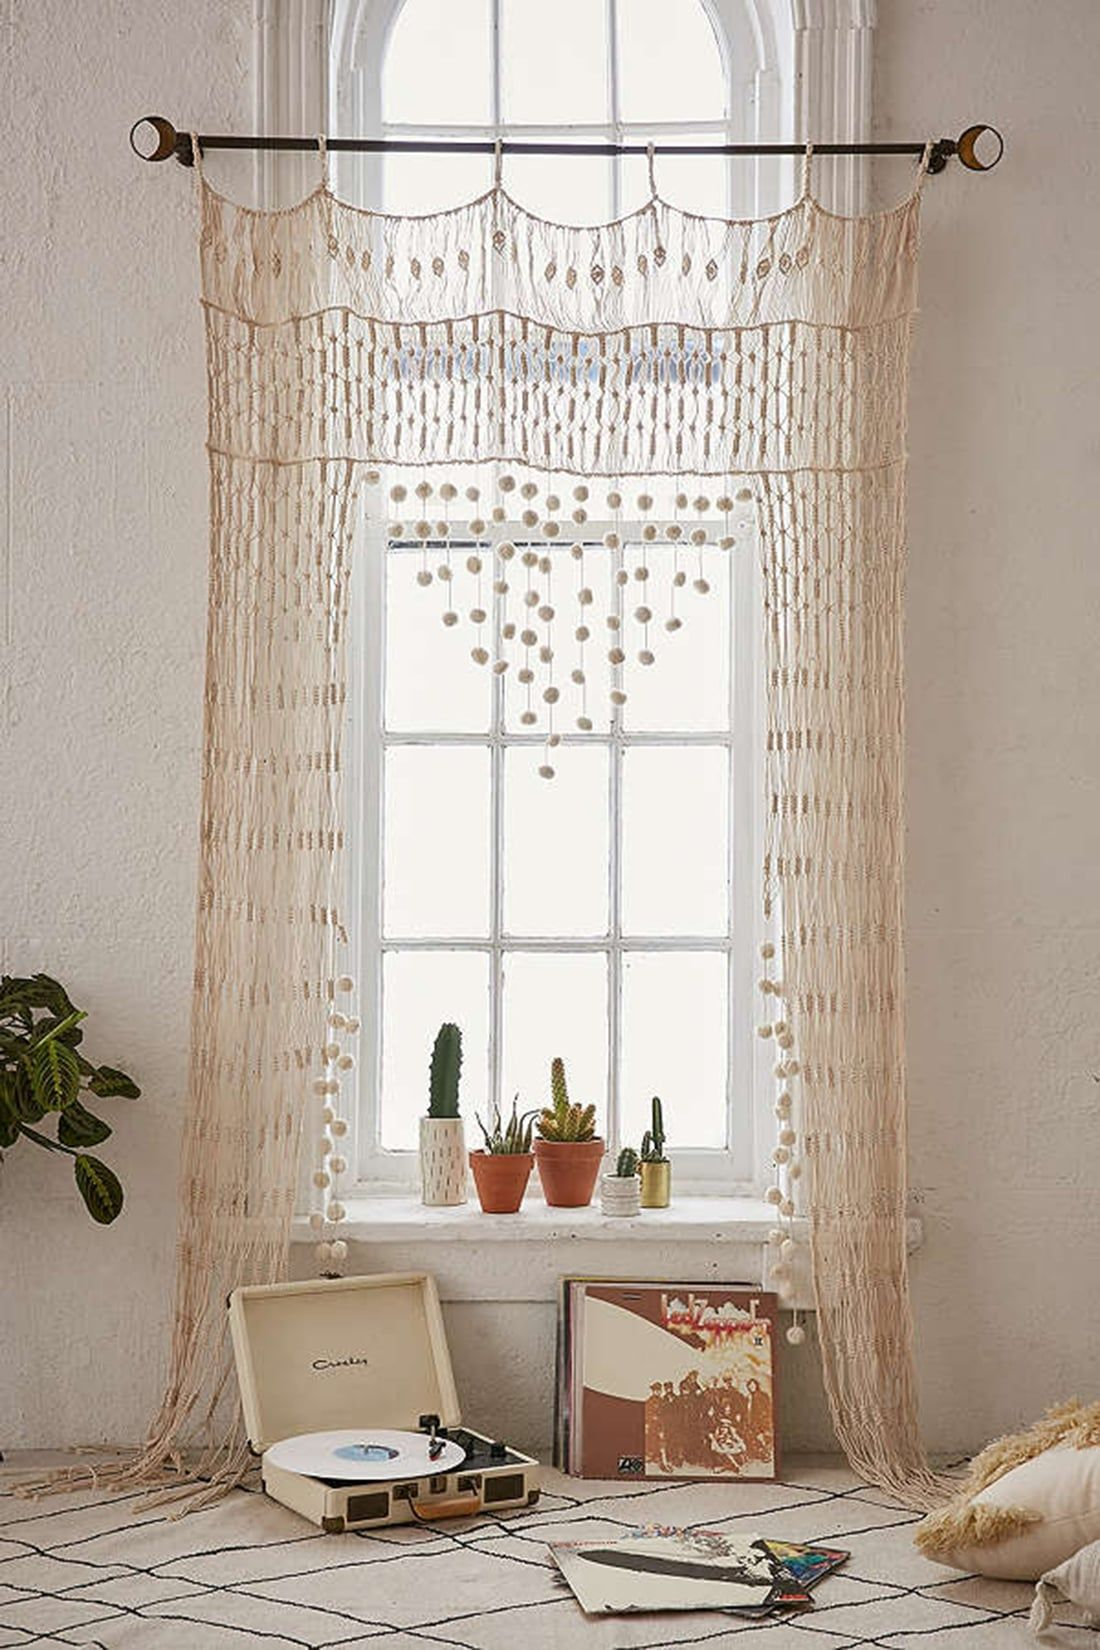 Boho Decor 7 Signs It S The Right Home Style For You Bohemian